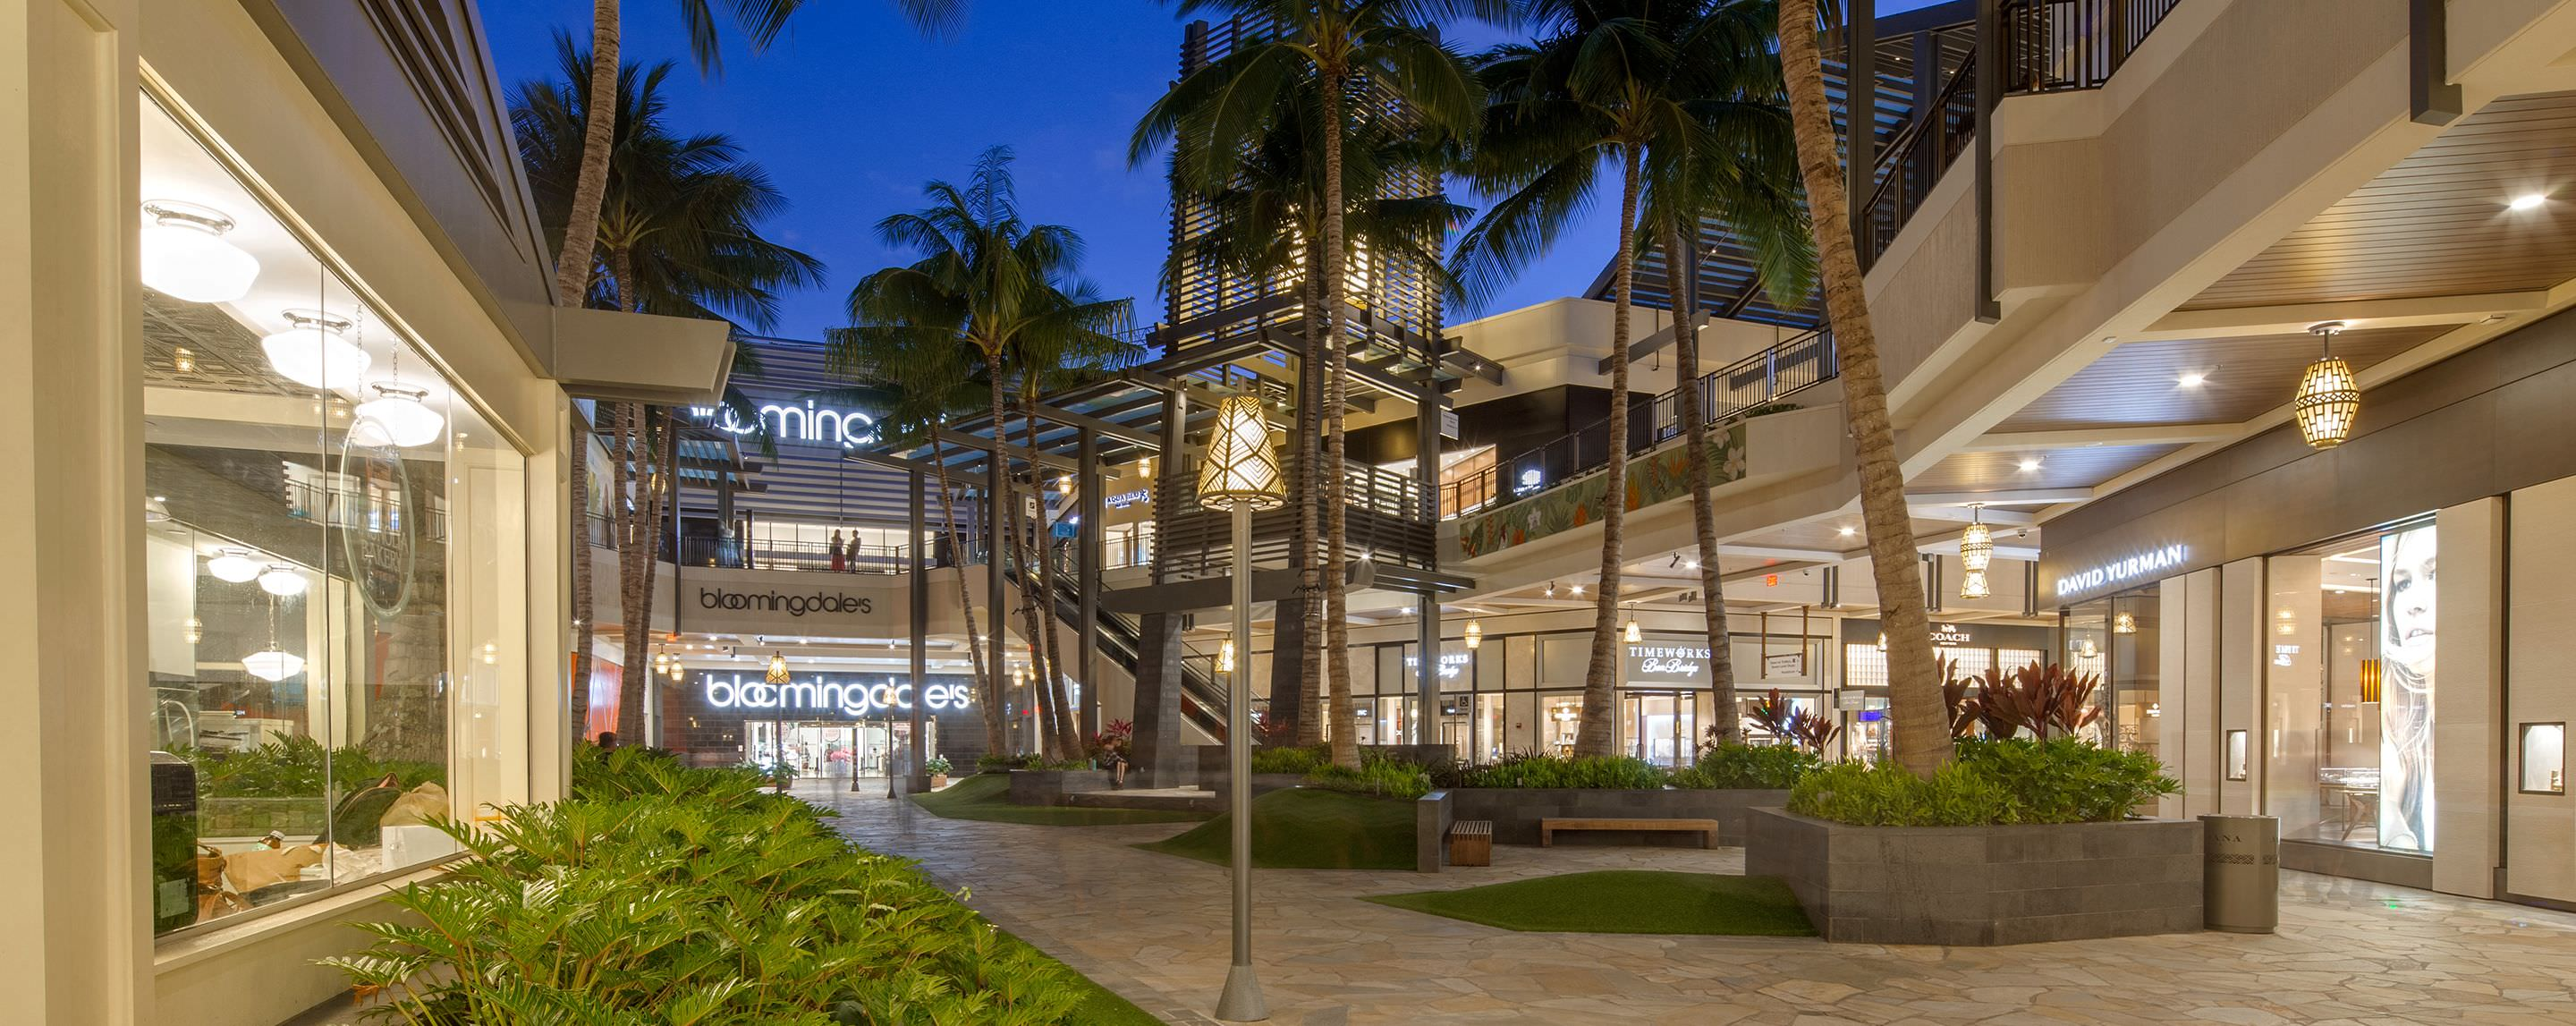 At dusk, an outdoor walkway at Ala Moana Center is lined with lit up store fronts and palm trees.